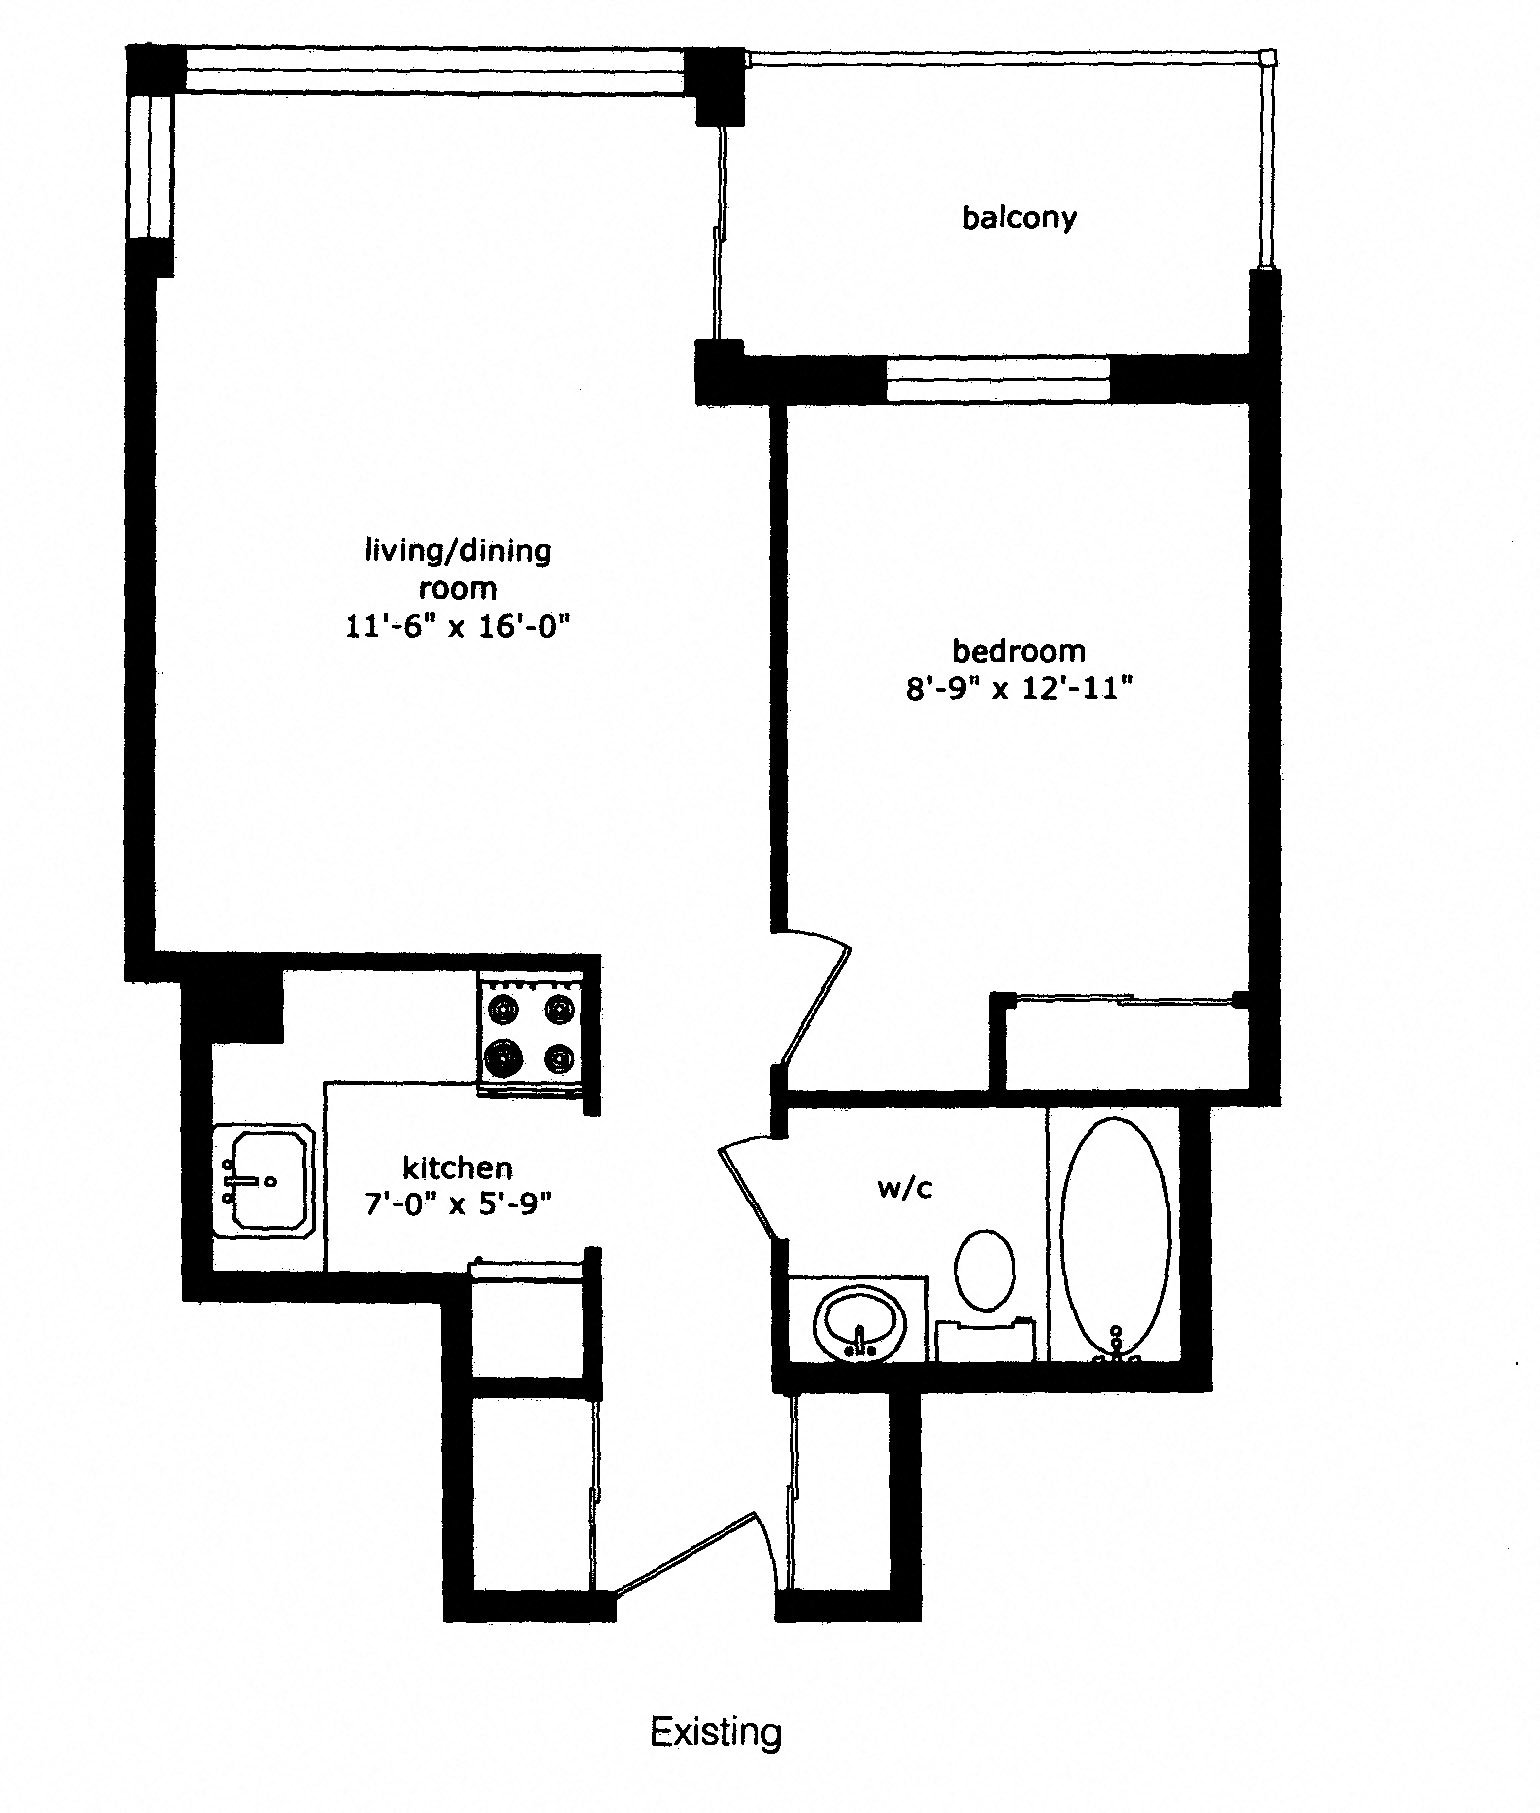 Floor Plans Of Regency Place Apartments In Whitby, ON